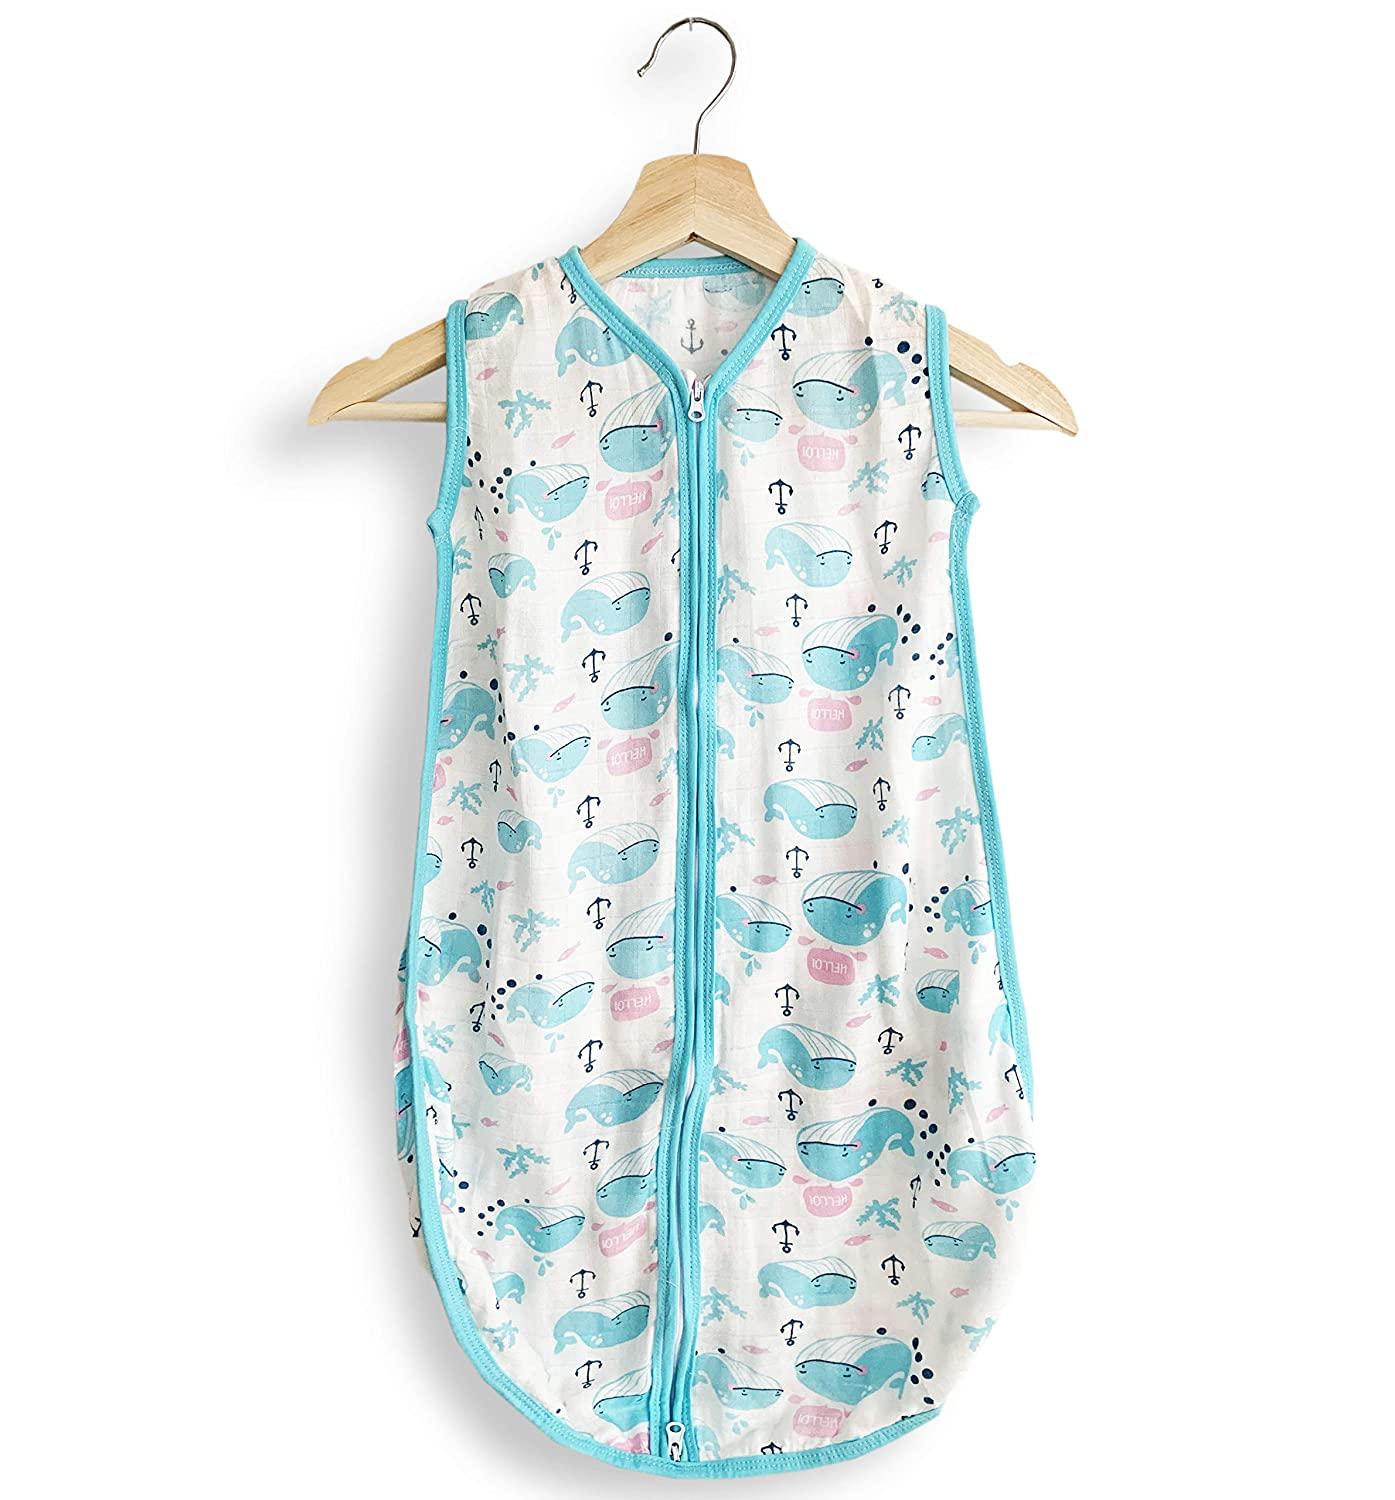 Super Soft and Breathable Baby Wearable Blanket Hypoallergenic Baby Sleepwear Eco-Friendly Lightwear Baby Sleep Sack Bamboo Baby Sleep Sack Organic Cotton Sleeping Bag